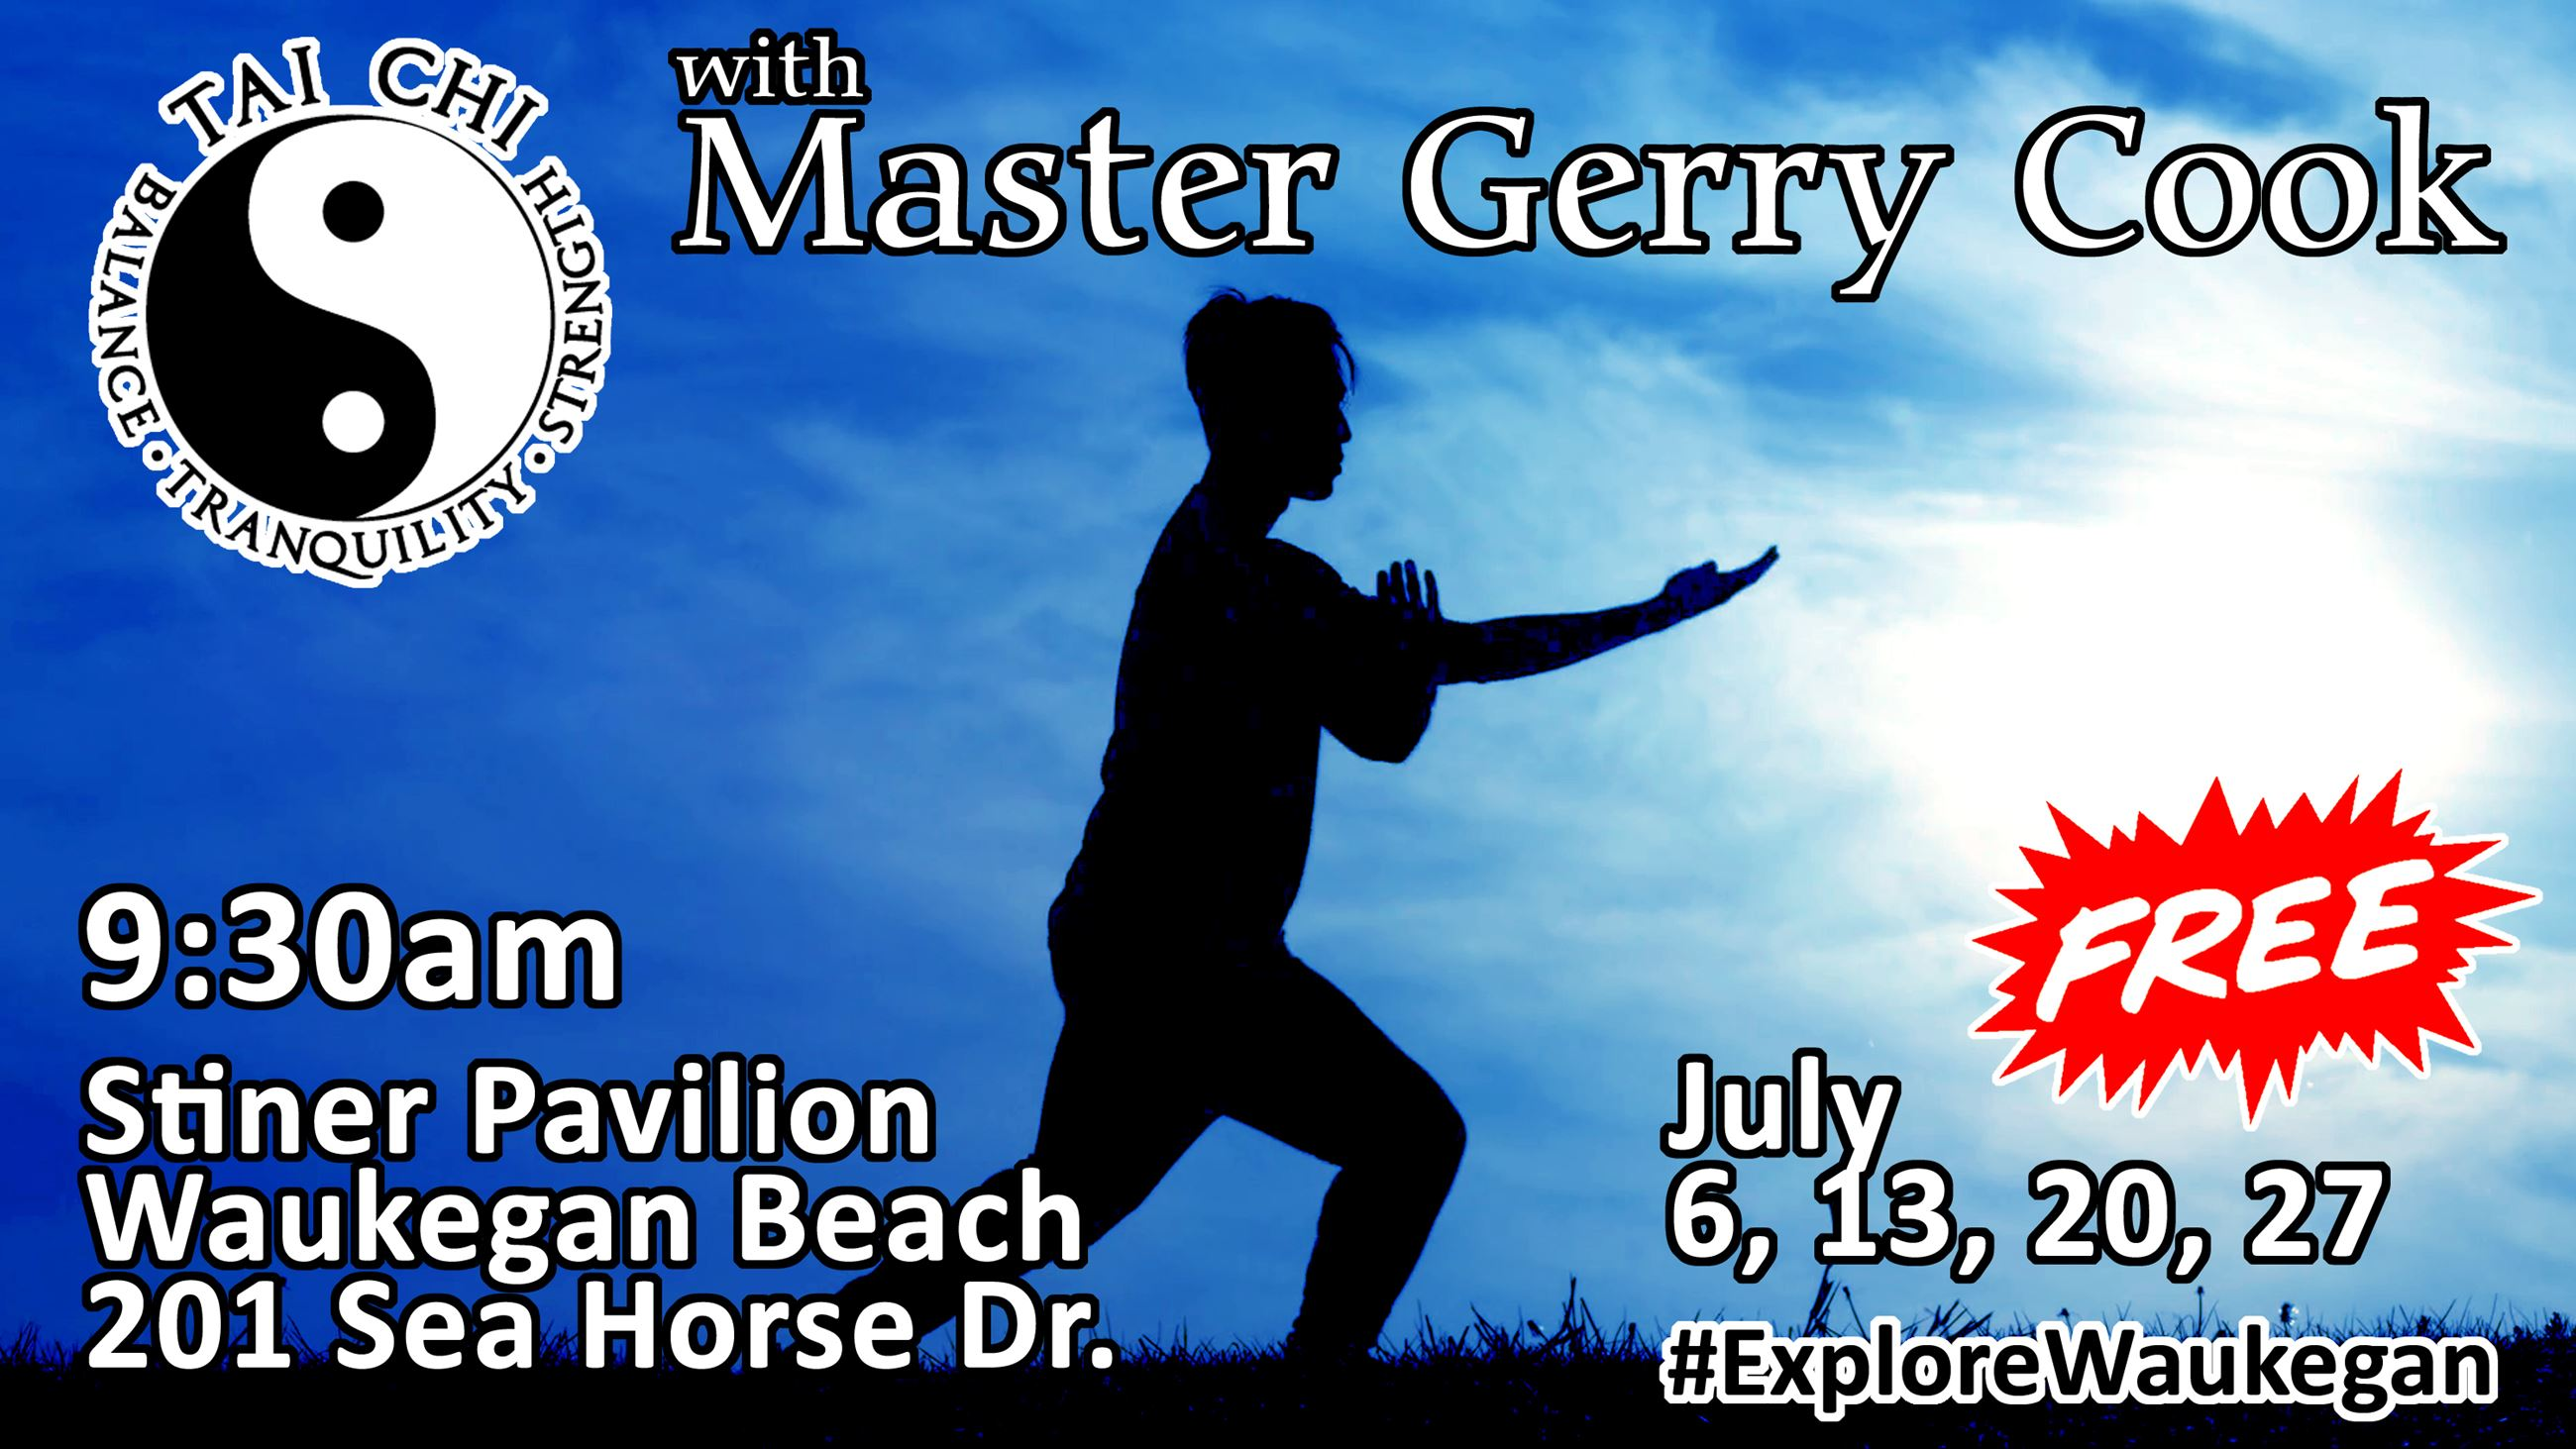 Tai Chi with Master Gerry Cook